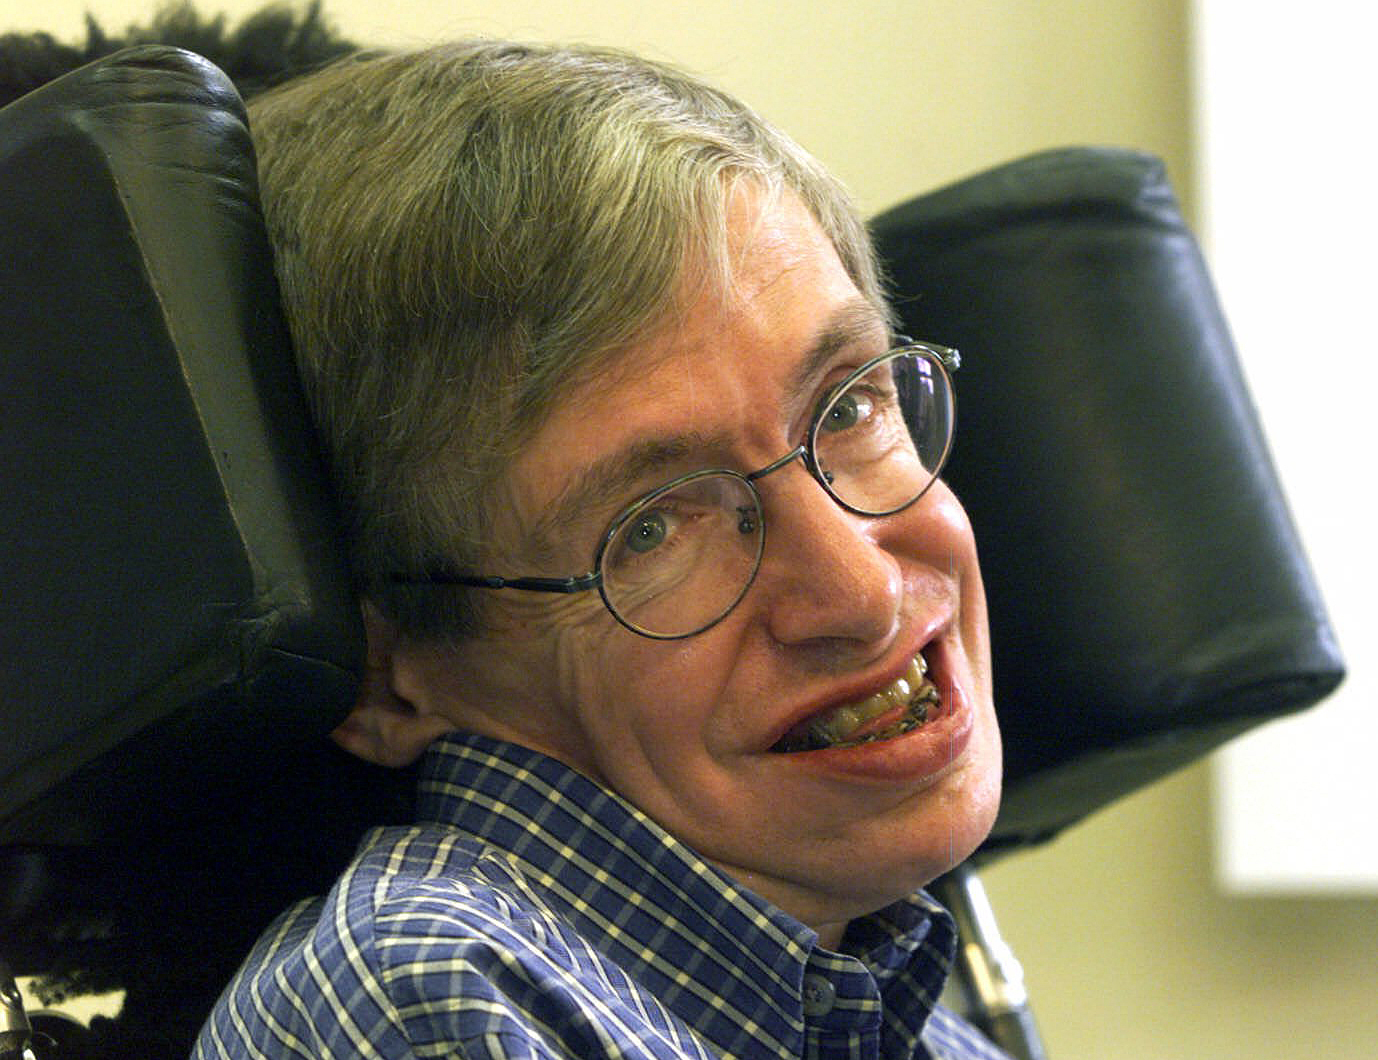 FILE - In this Wednesday, July 21, 1999 file photo Professor Stephen Hawking smiles during a news conference at the University of Potsdam, near Berlin, Germany. Hawking, whose brilliant mind ranged across time and space though his body was paralyzed by di